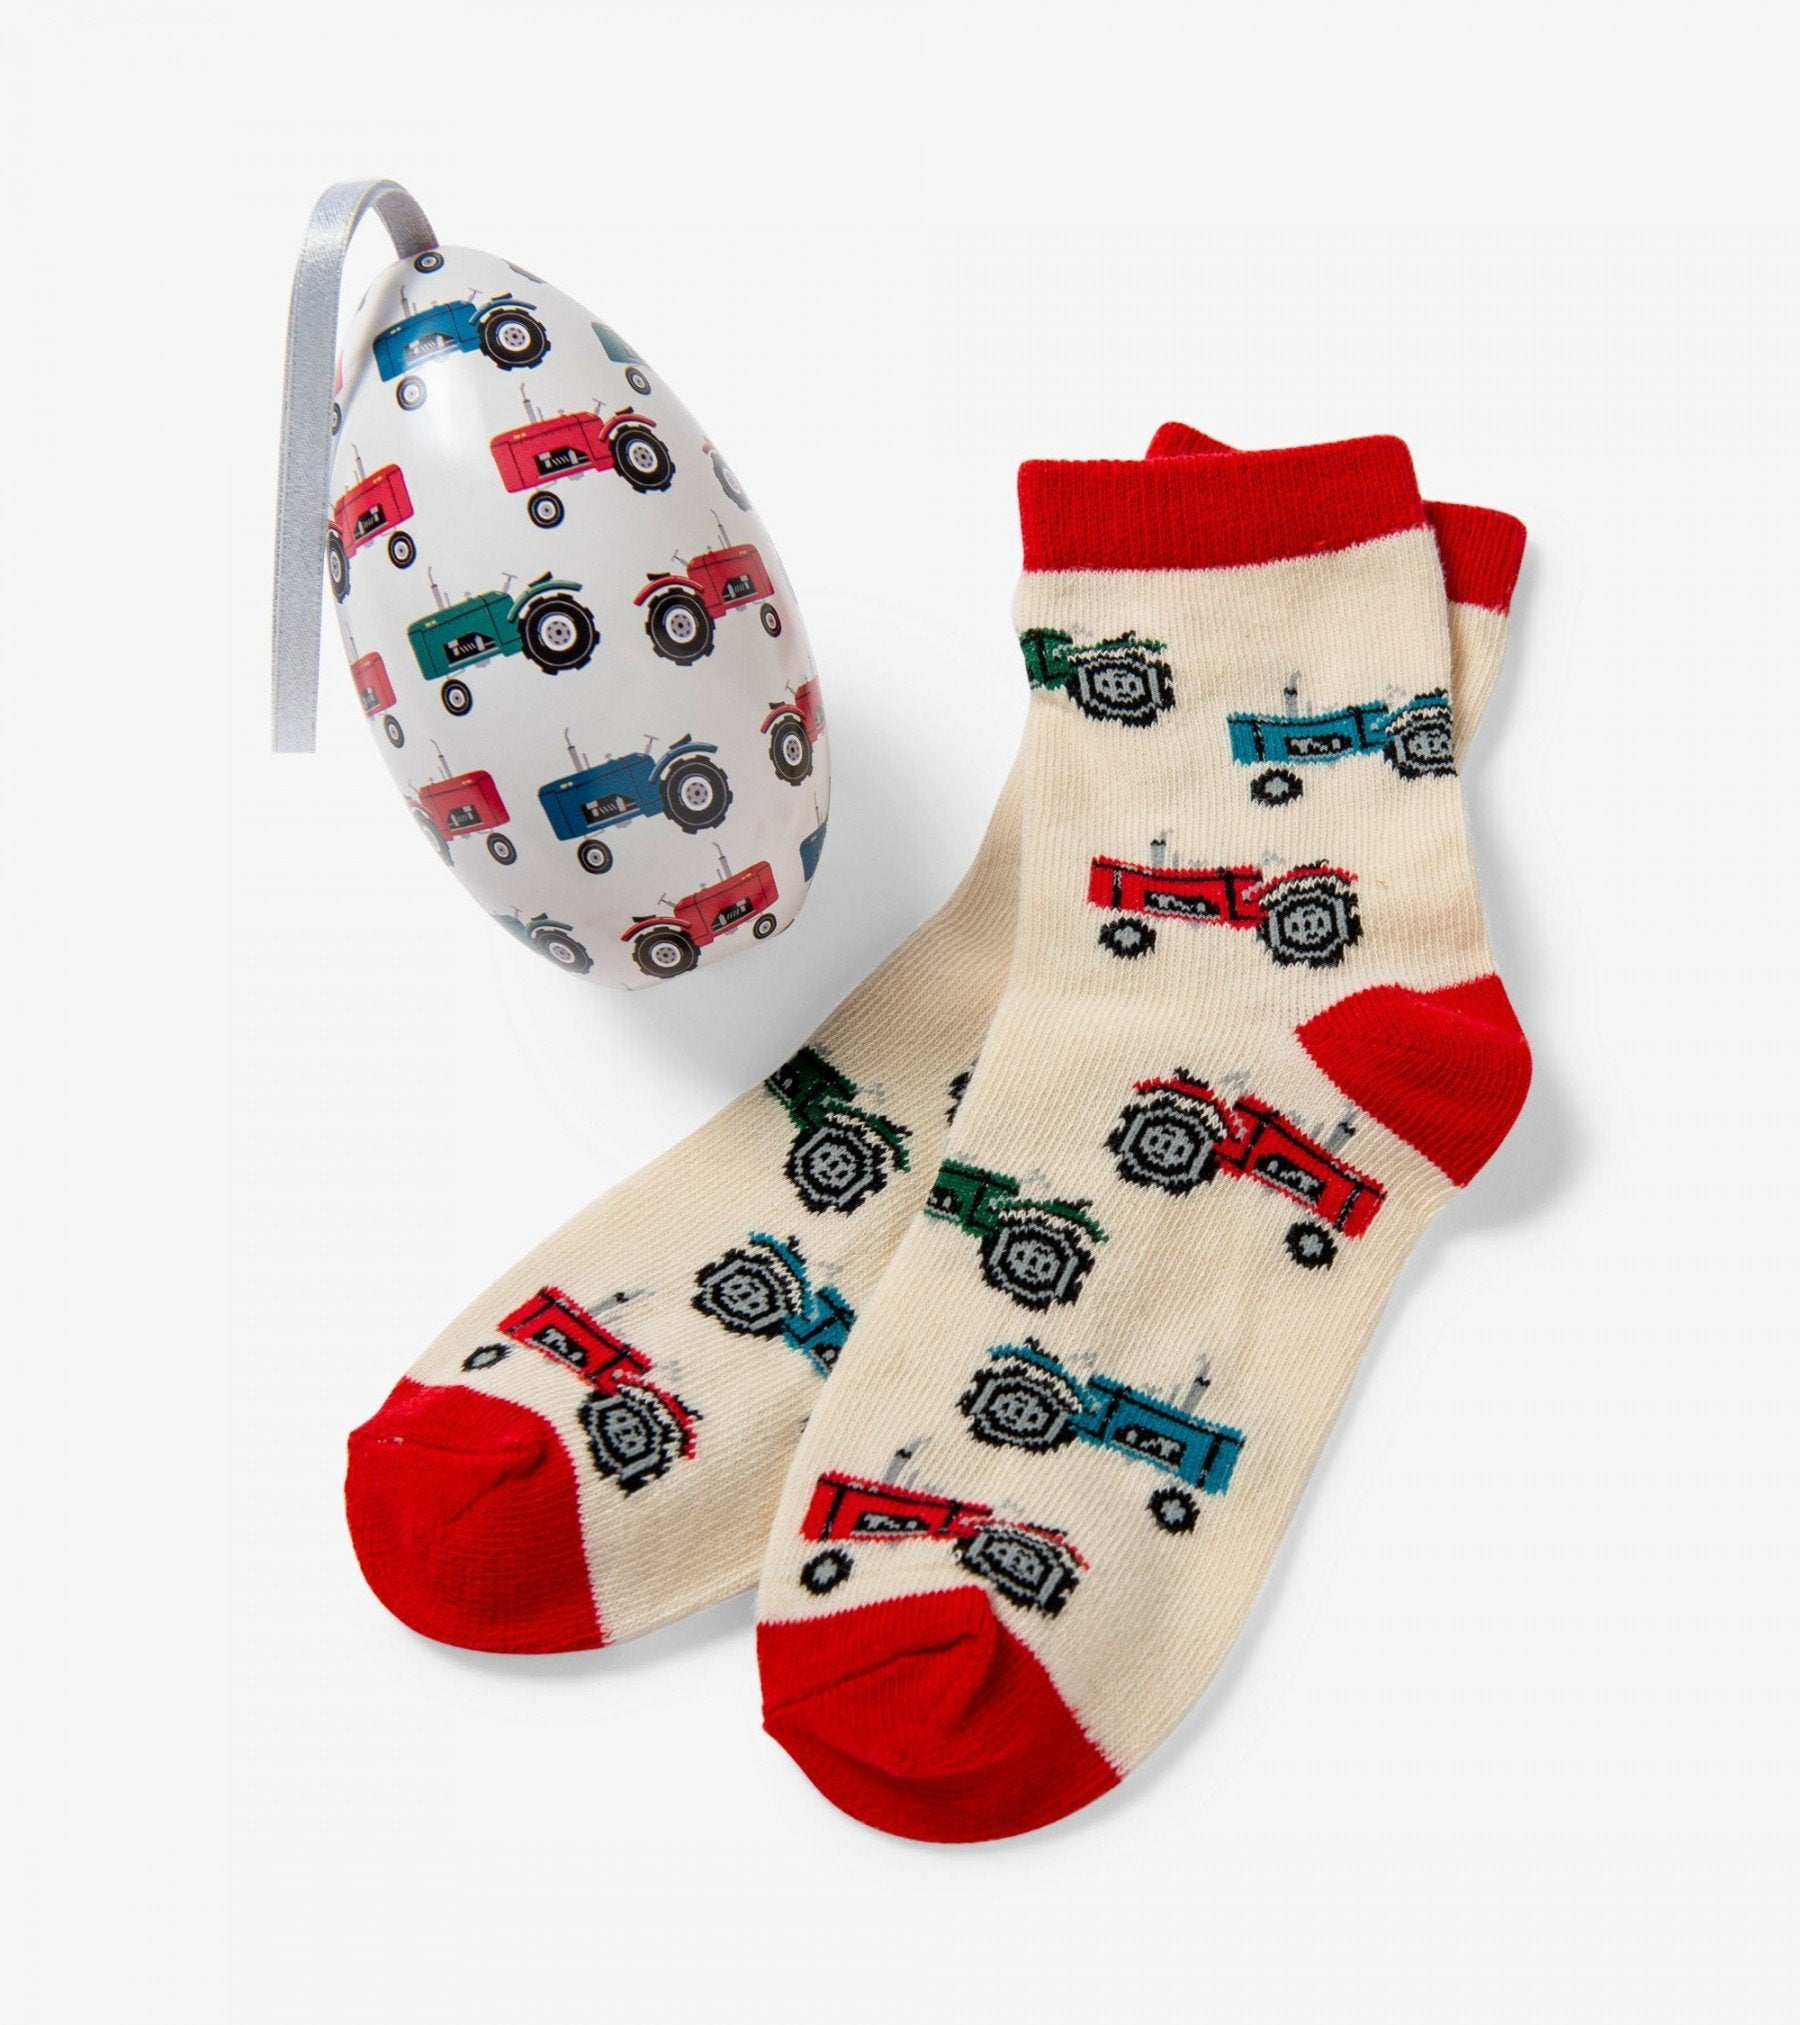 FARM TRACTORS KIDS SOCKS IN EGGS - Molly's! A Chic and Unique Boutique